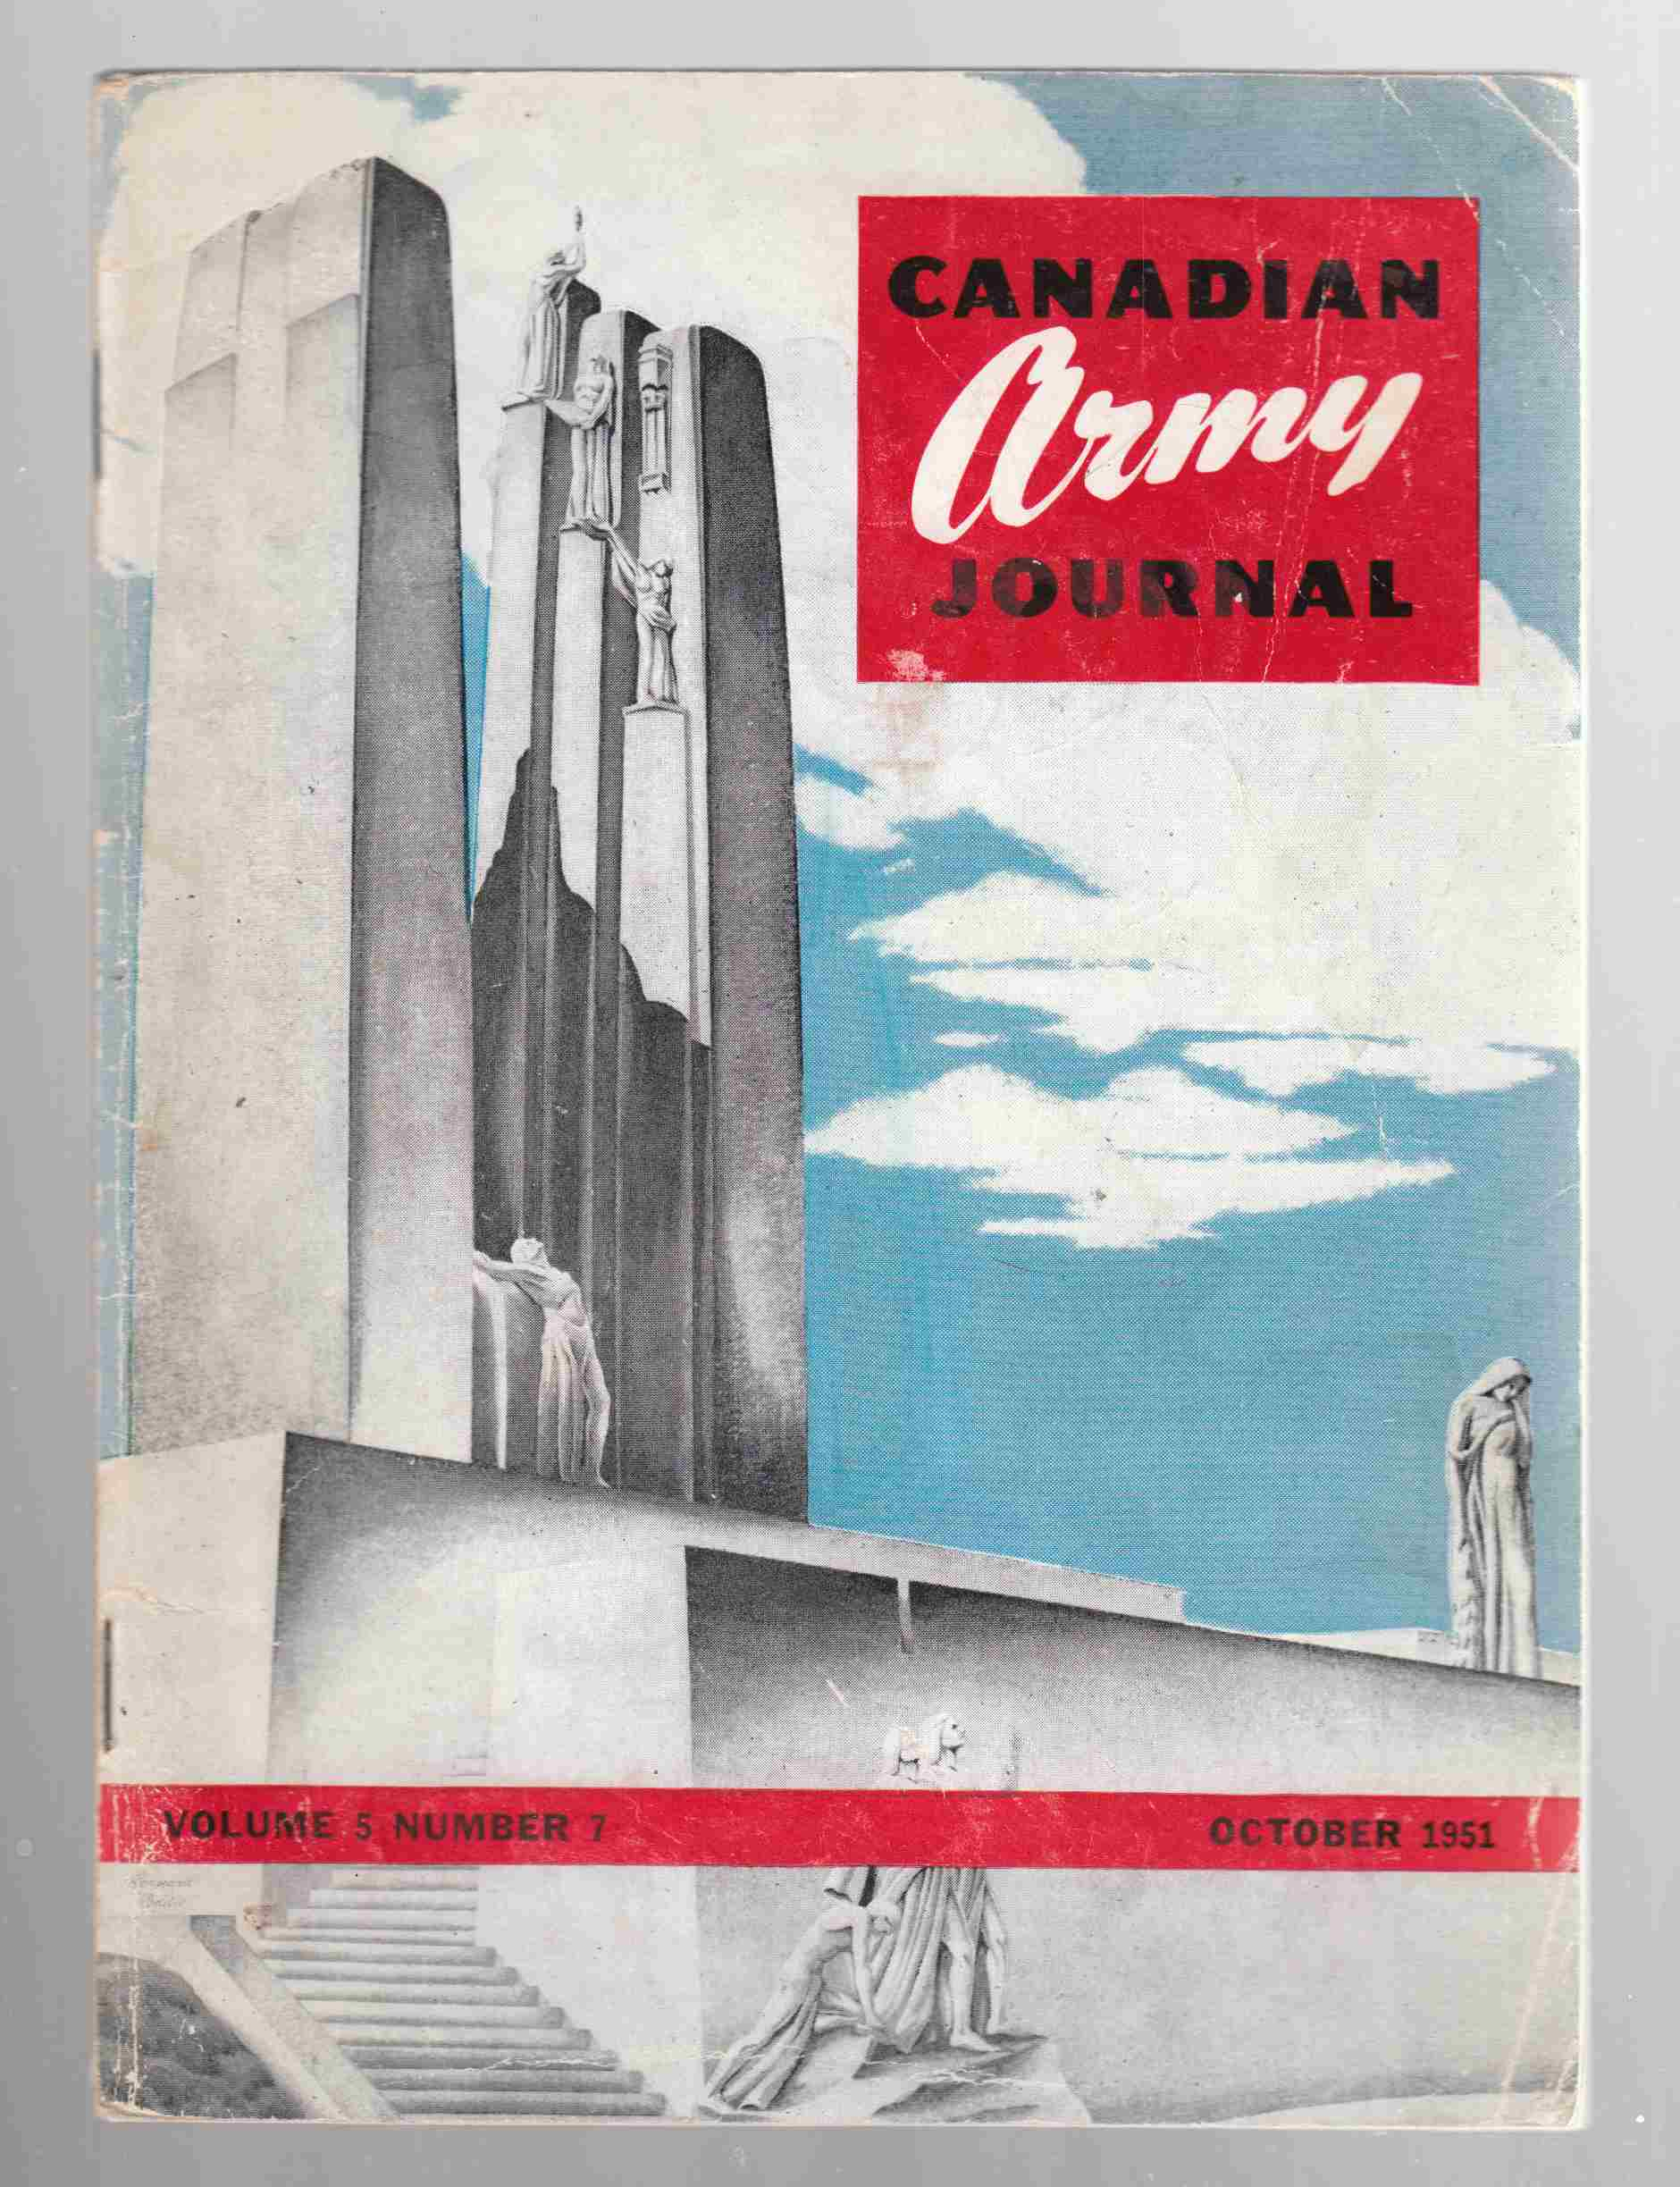 Image for Canadian Army Journal Volume 5 Number 7 October 1951